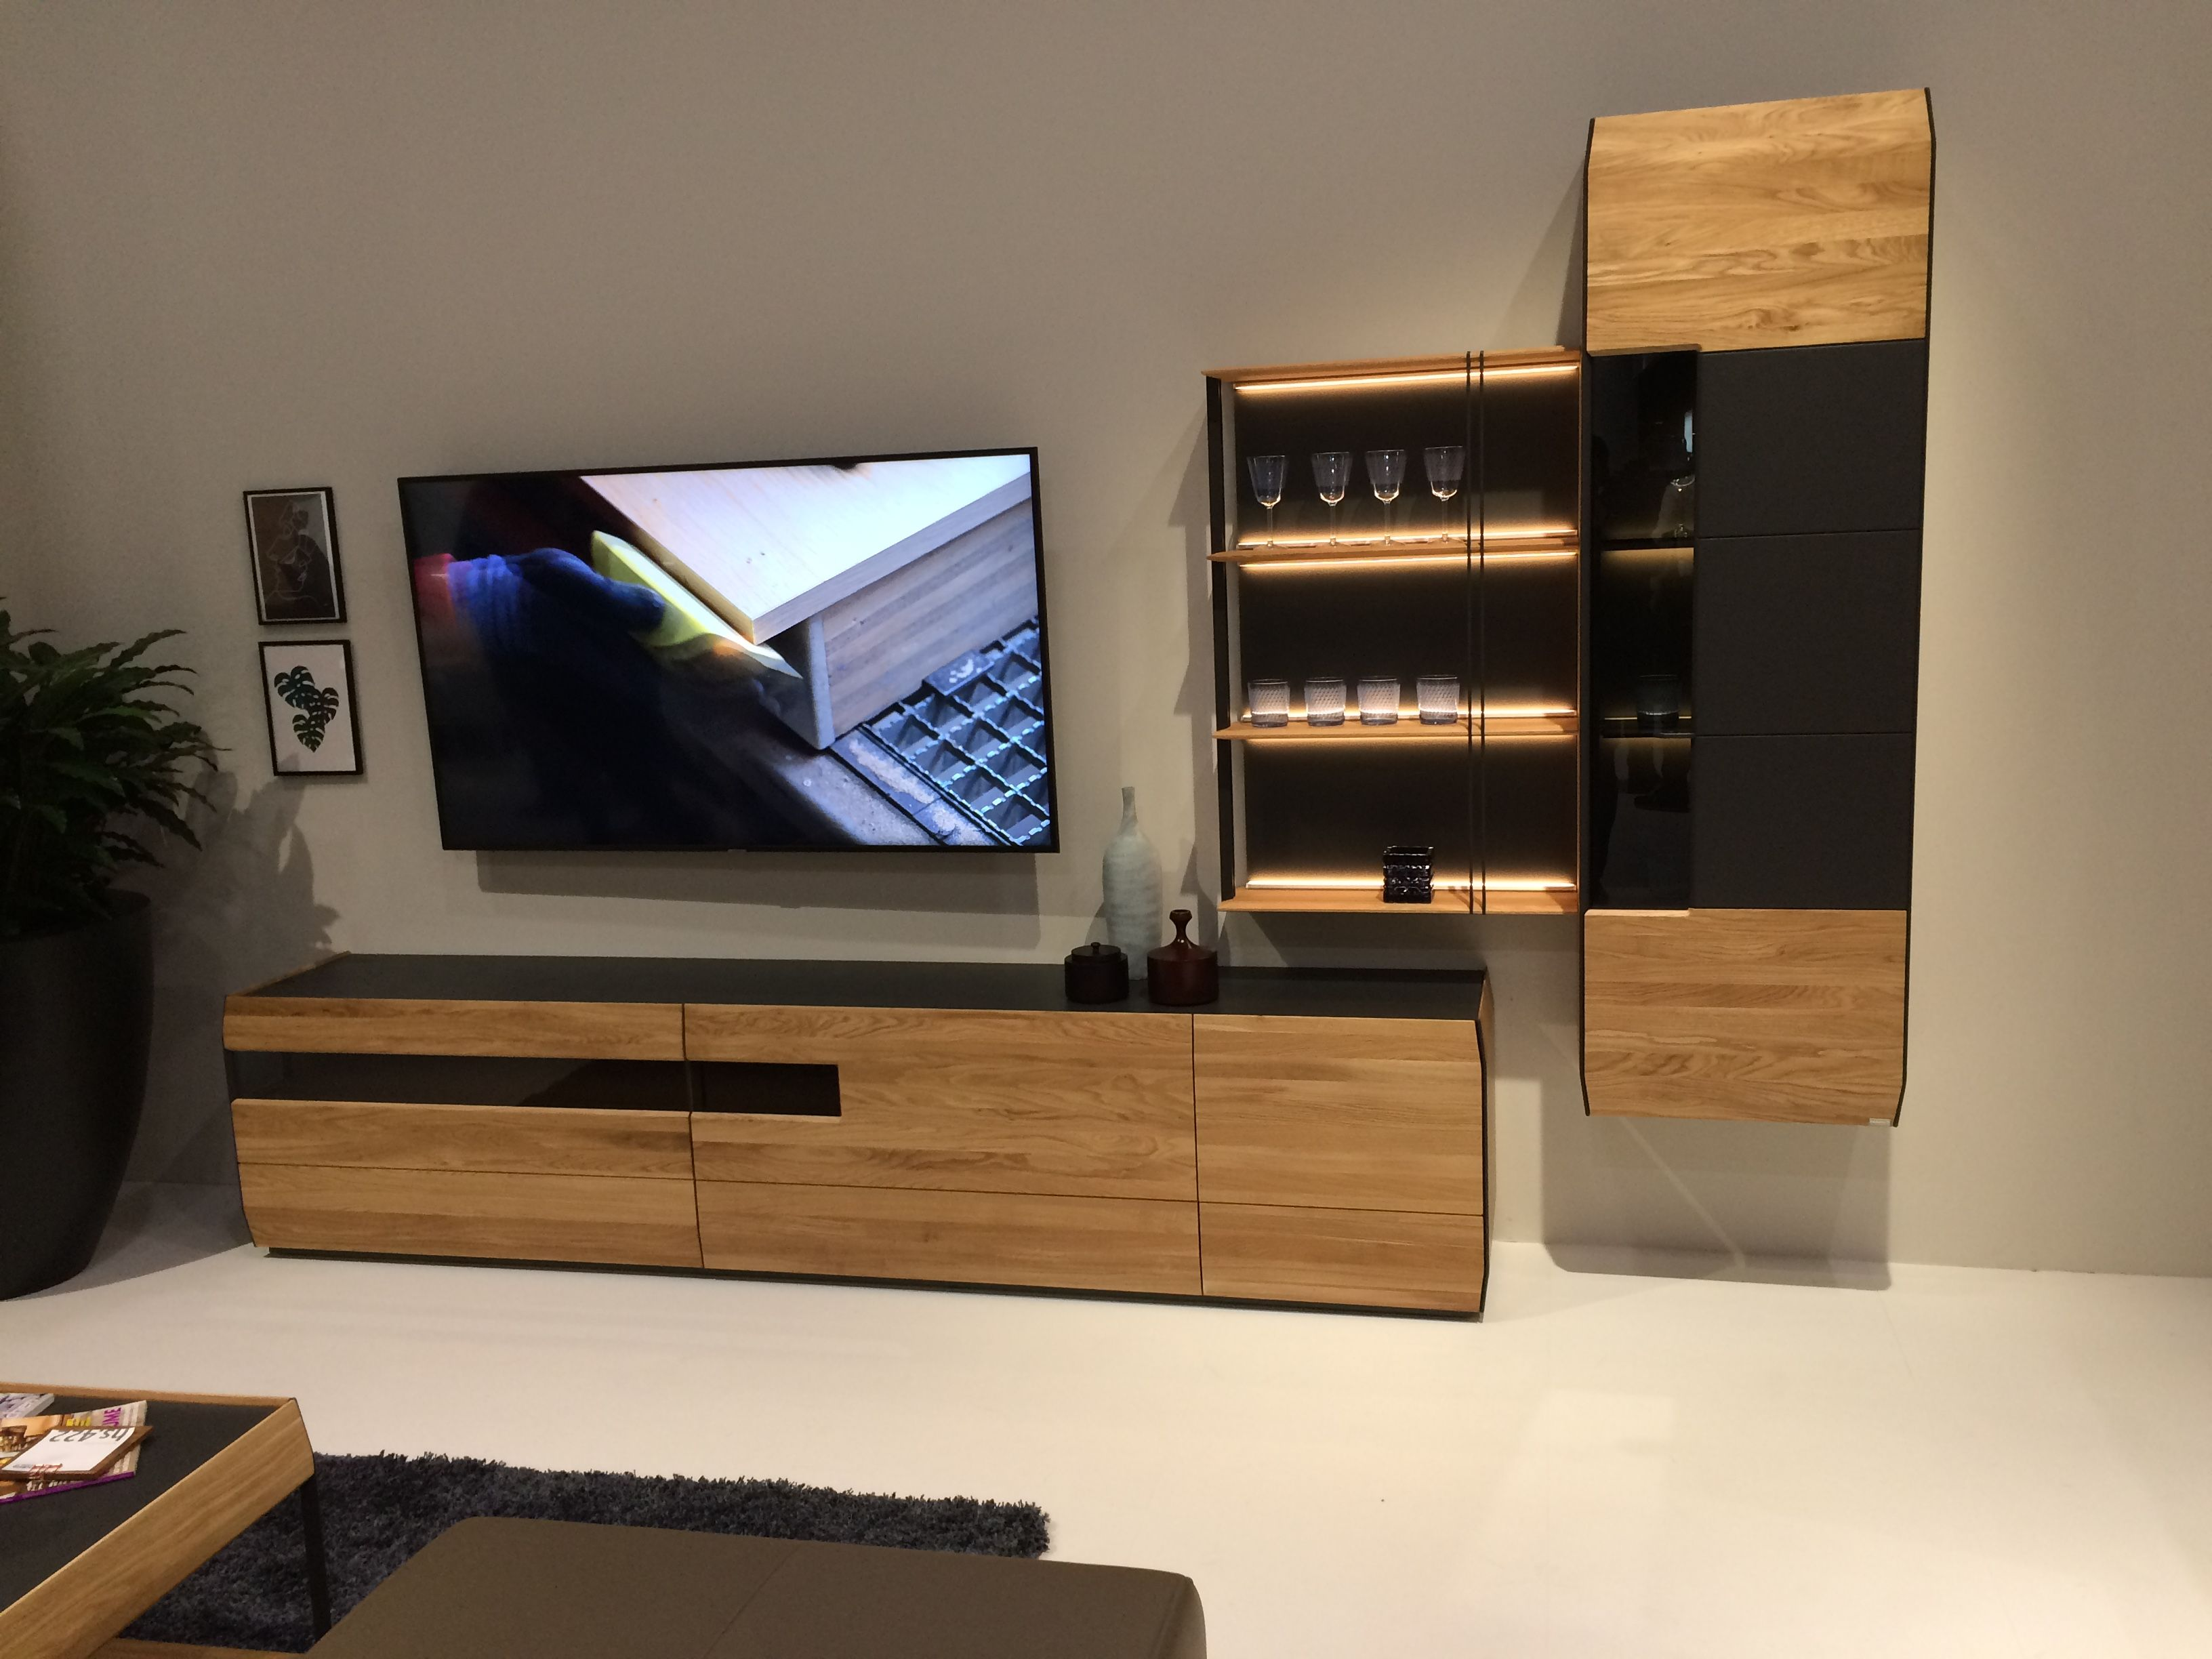 Some Interesting Pieces From The Imm Cologne 2019 Furniture Fair Des Meubles Qui Ont Retenu Notre At Flat Screen Flatscreen Tv Electronic Products